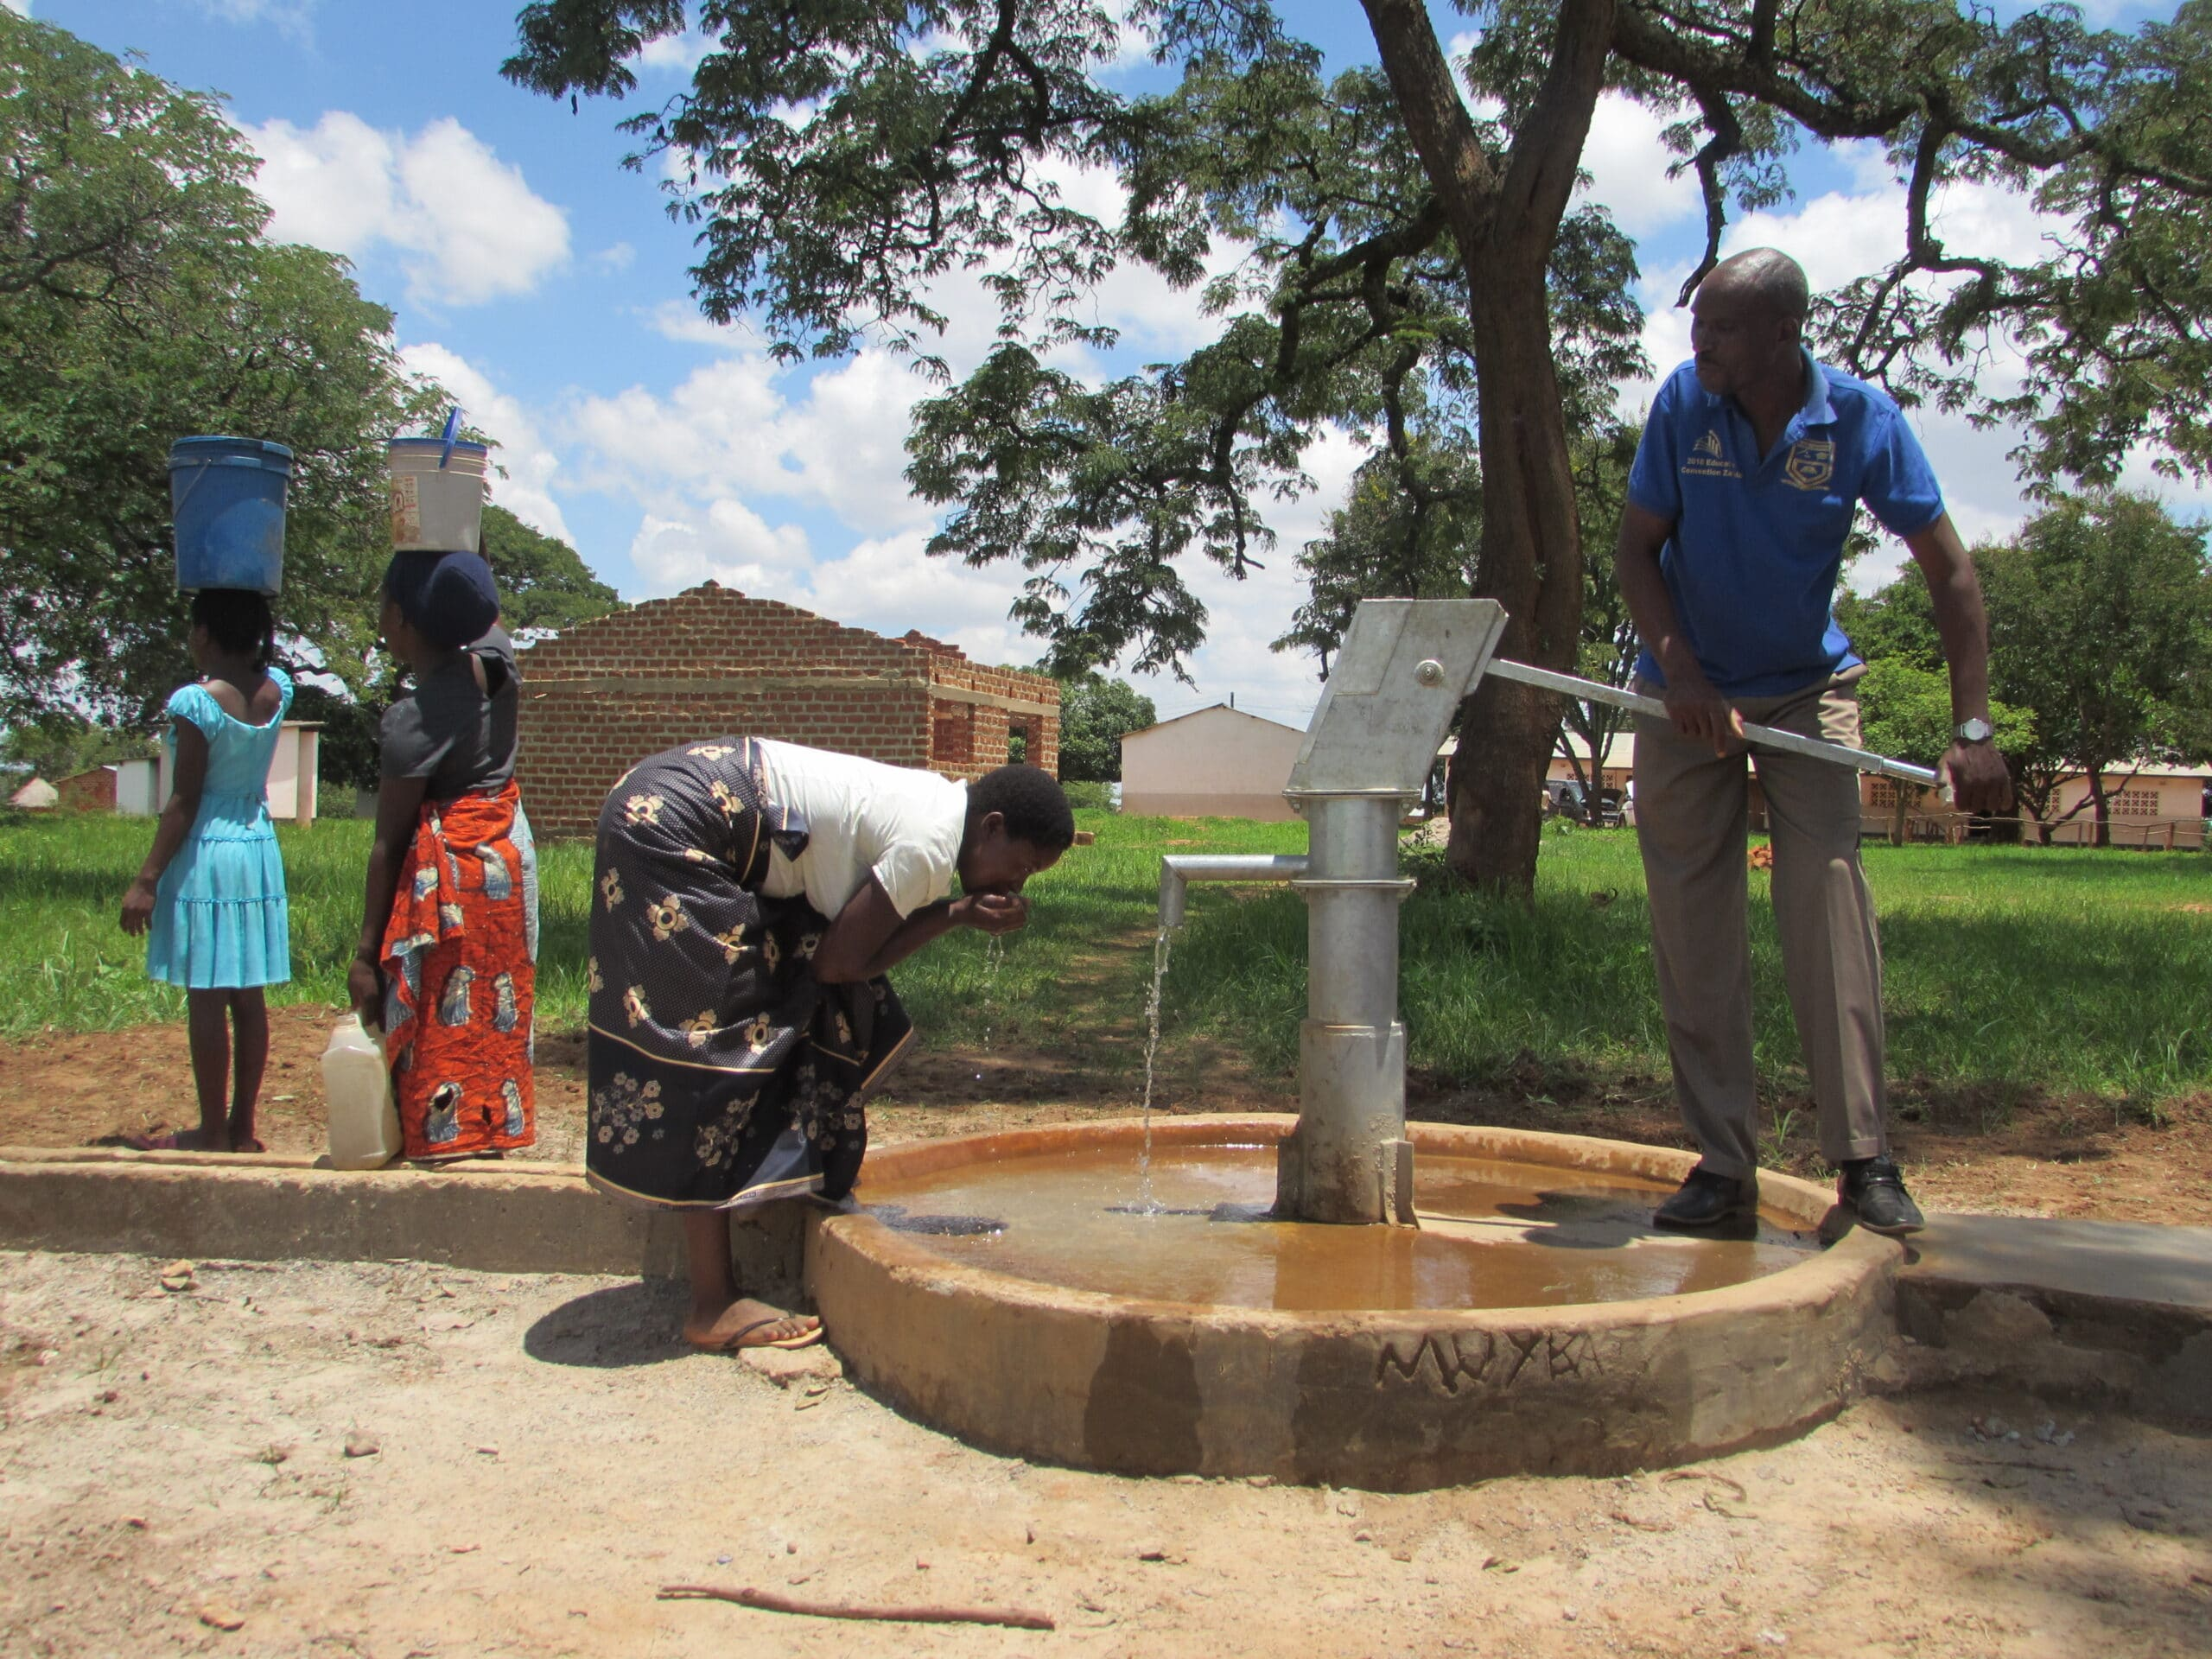 Canada Wishing Well Project No. 4 Community using Borehole